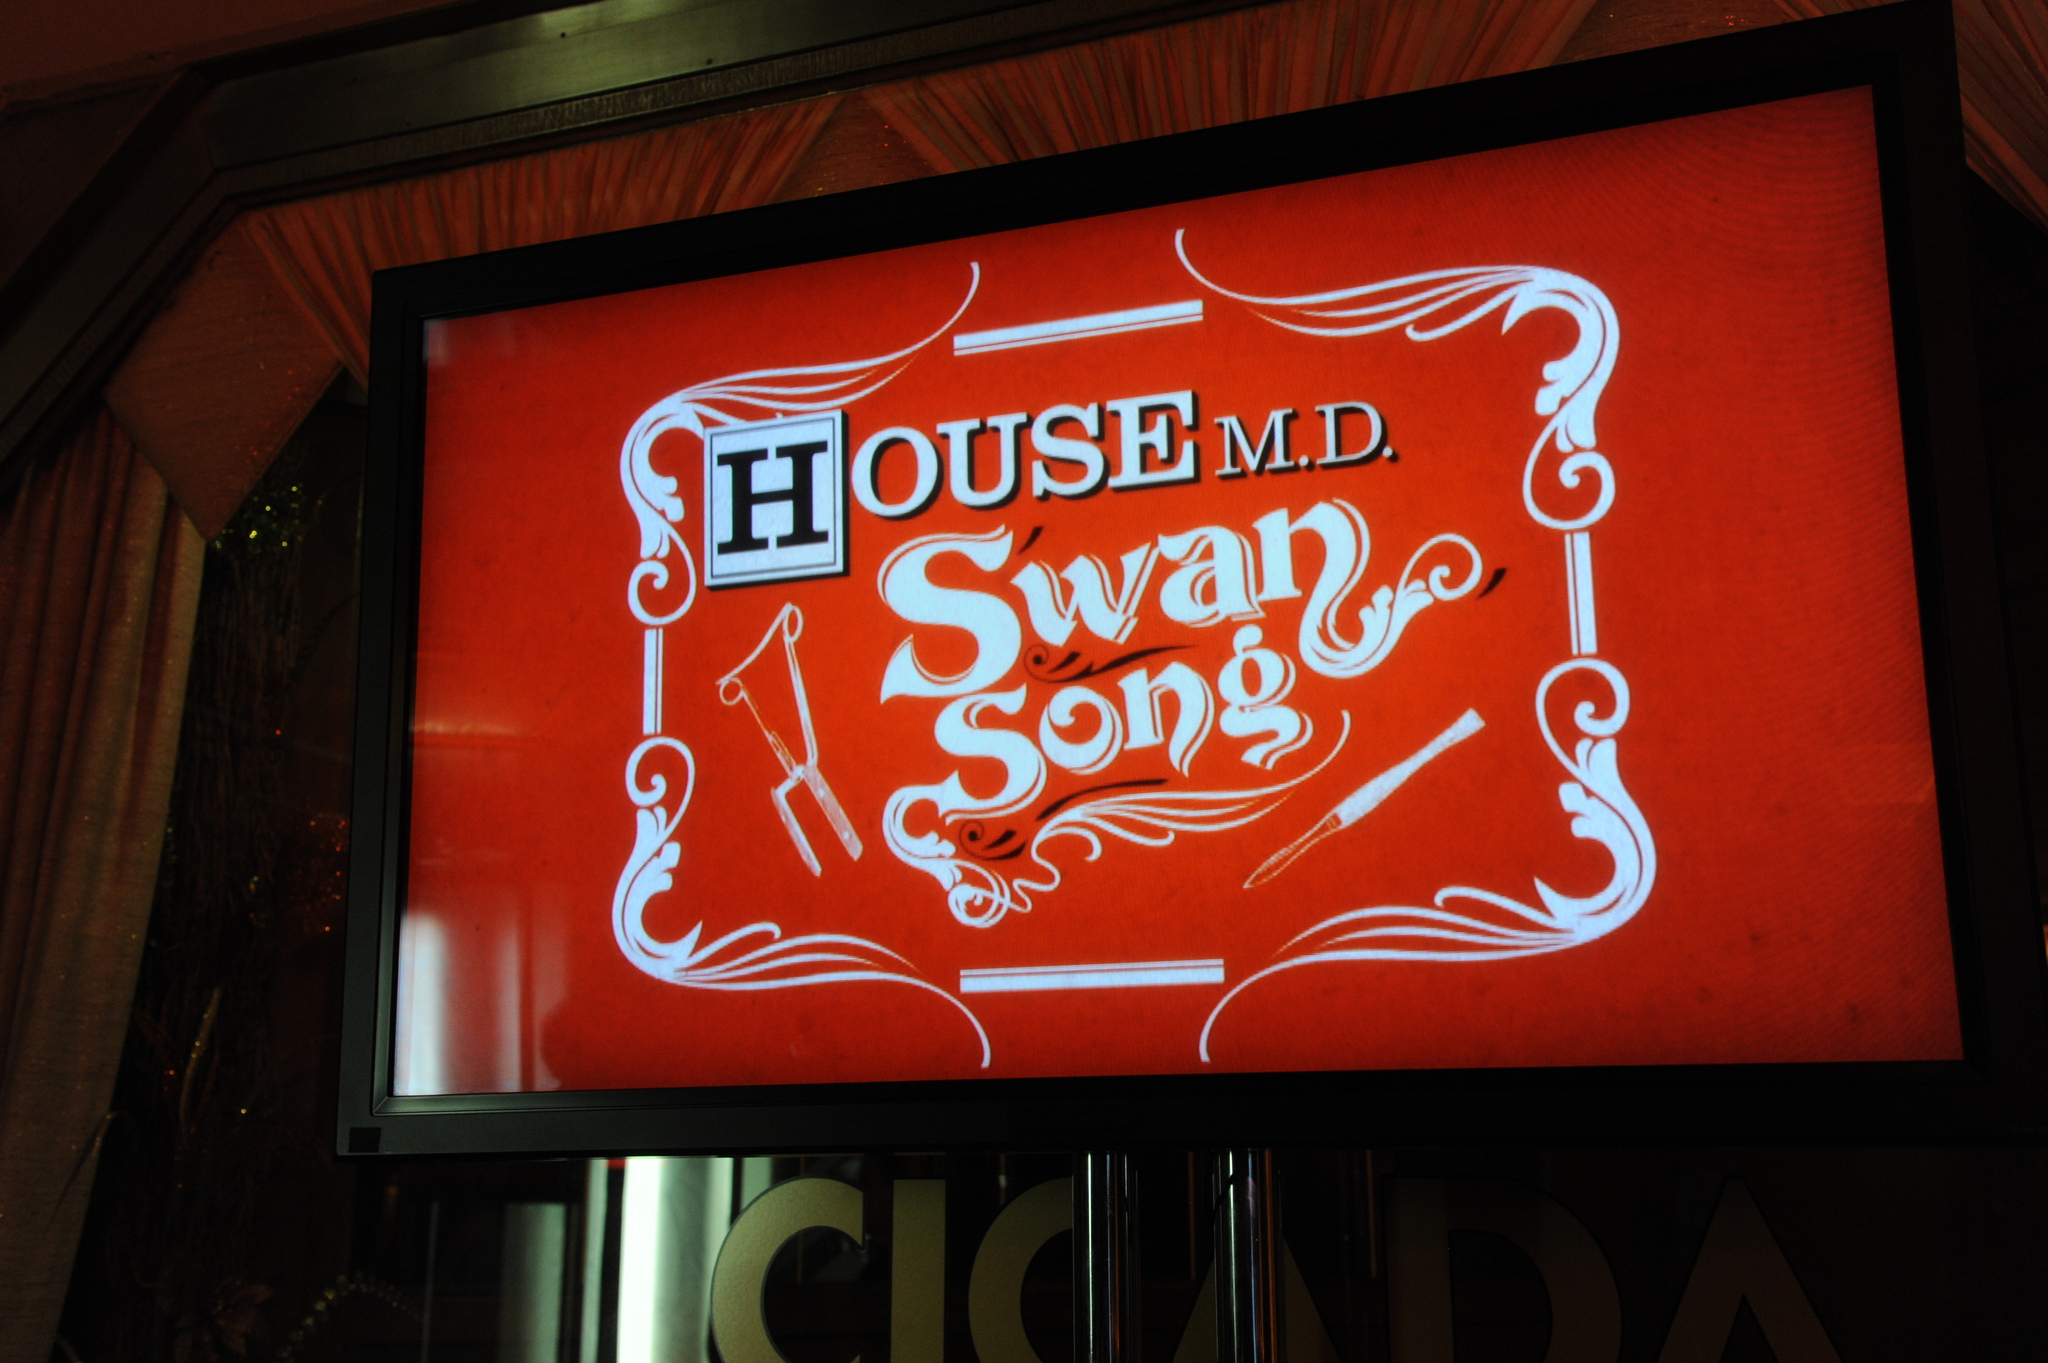 House-M-D-Series-Wrap-Party-April-20-2012-house-md-30554237-2048-1363.jpg